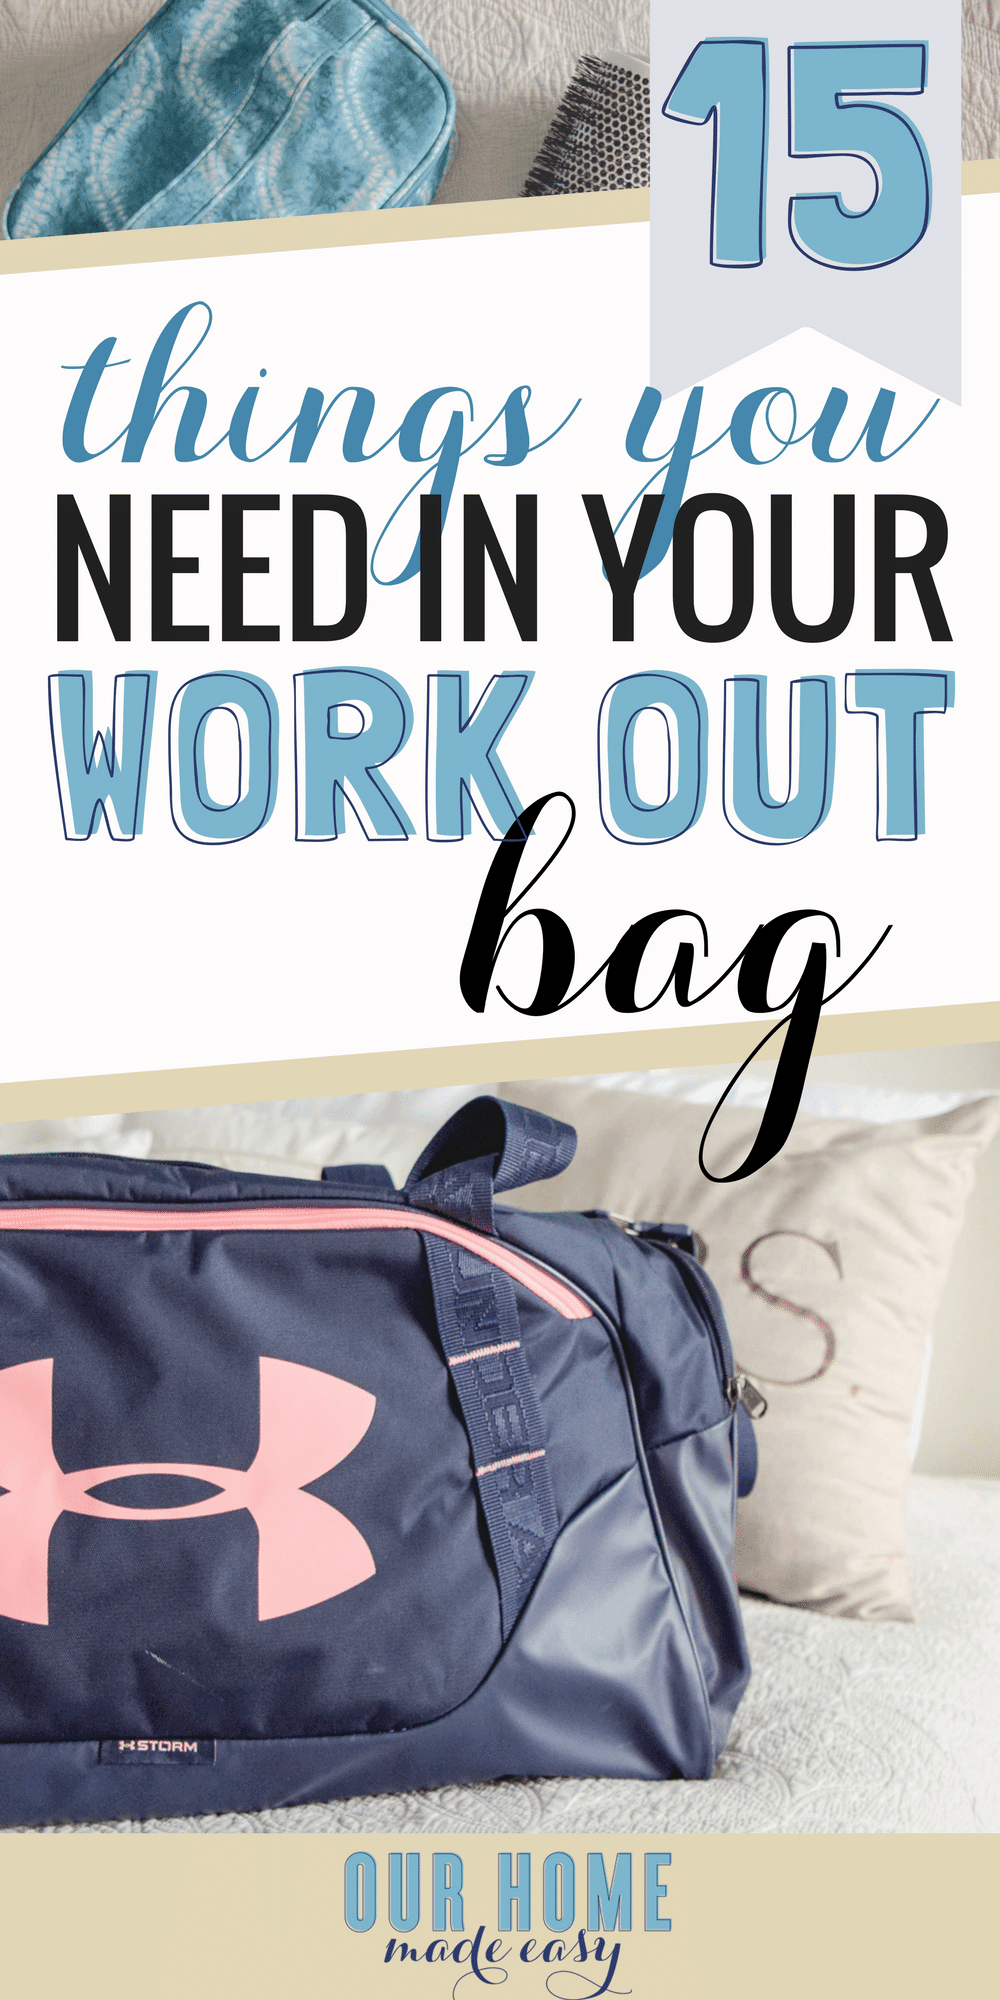 Running to the office after a work-out session? Don't miss these 15 must-haves for every gym bag! Click to see what you need to go from exercising to work easily! #momlife #workingout #exercise #gymbag #organization